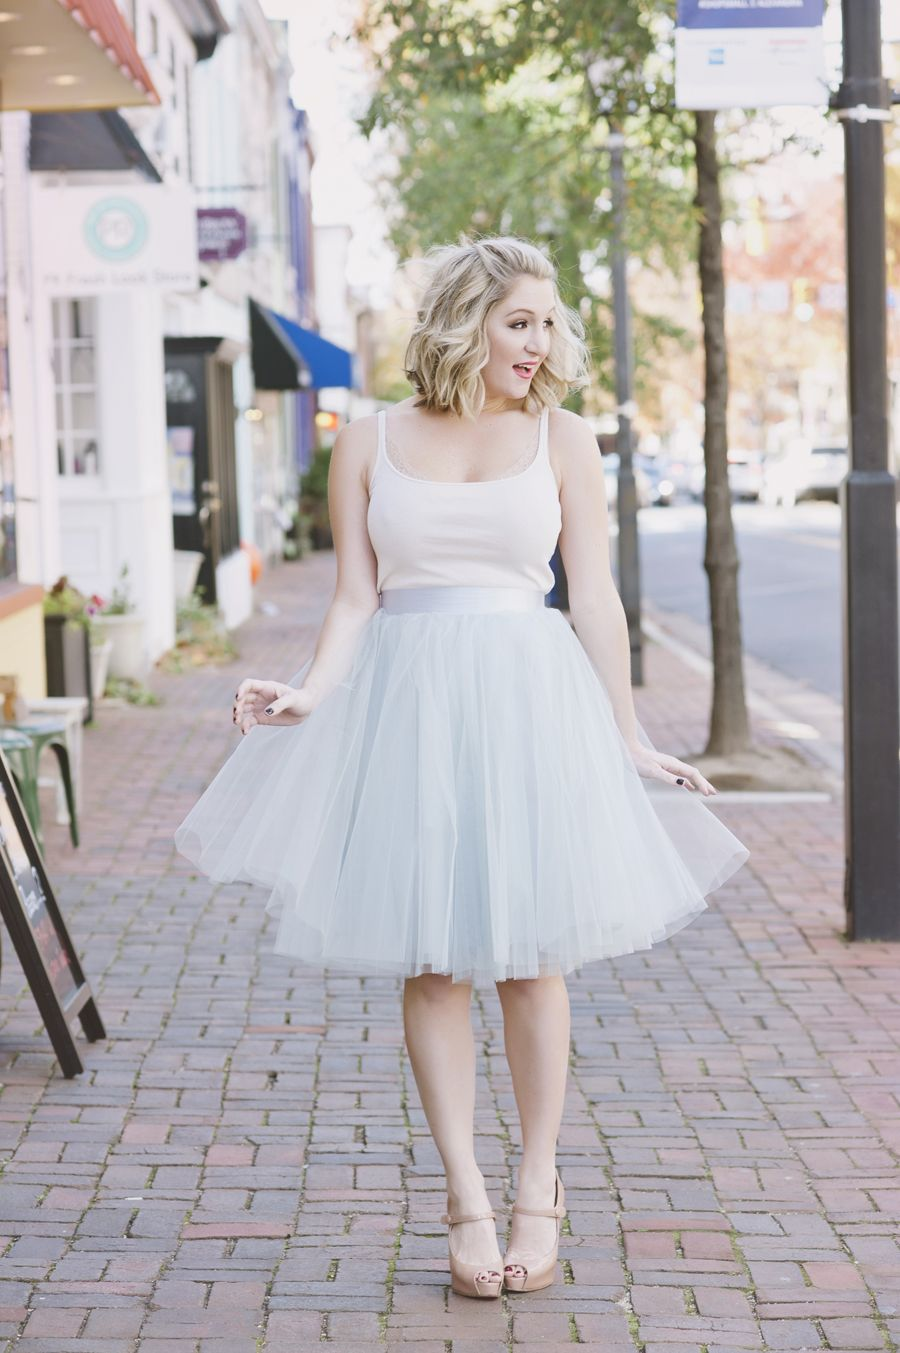 blogger bombshell series: lacey as carrie bradshaw - unveil